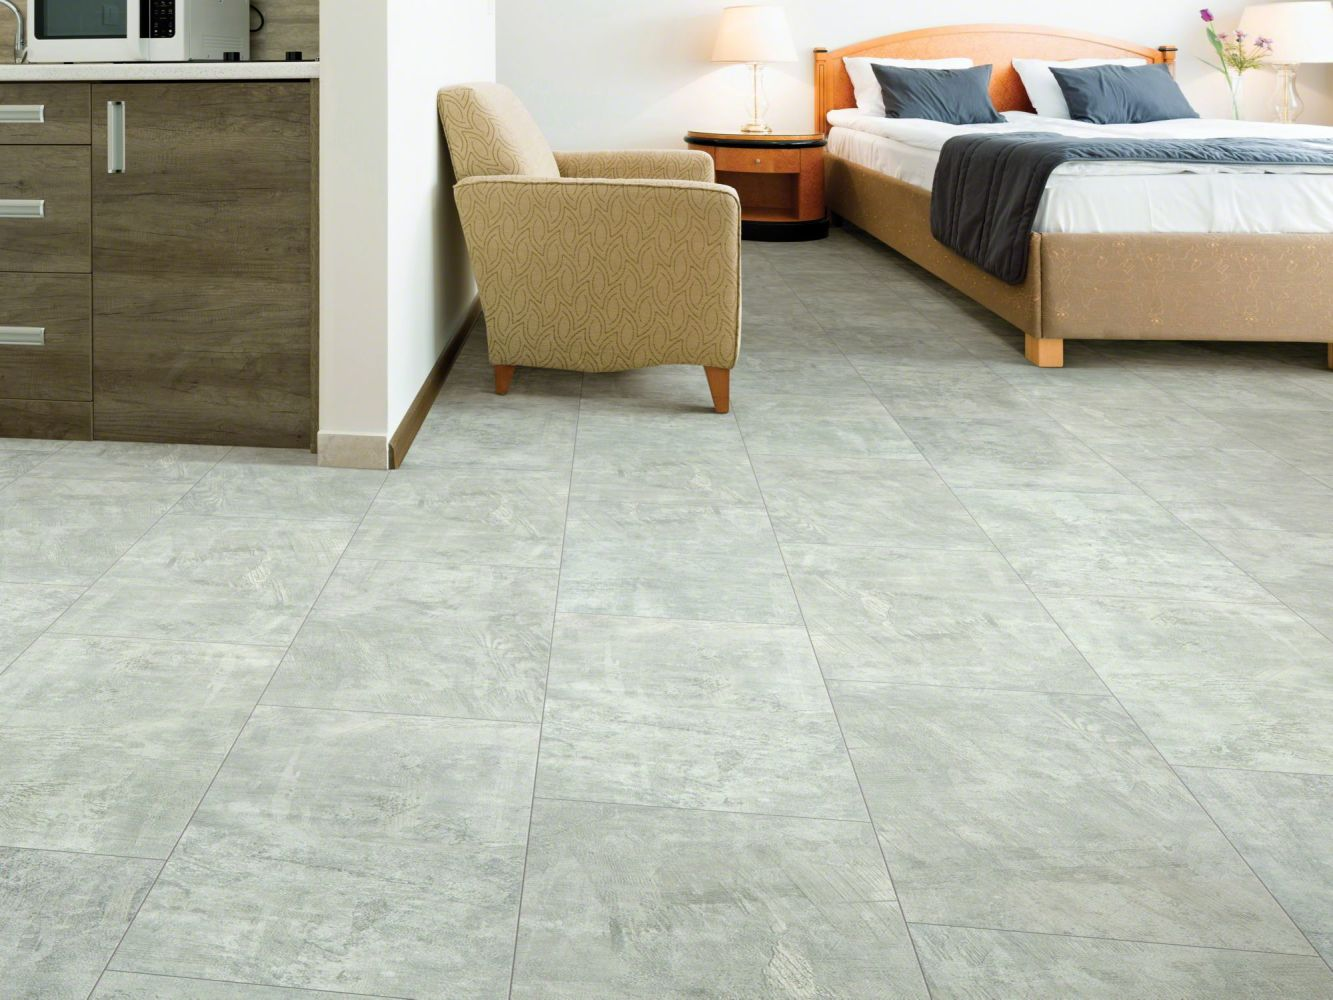 Shaw Floors Resilient Home Foundations Mineralite 720c Plus Graphite 05001_522RG